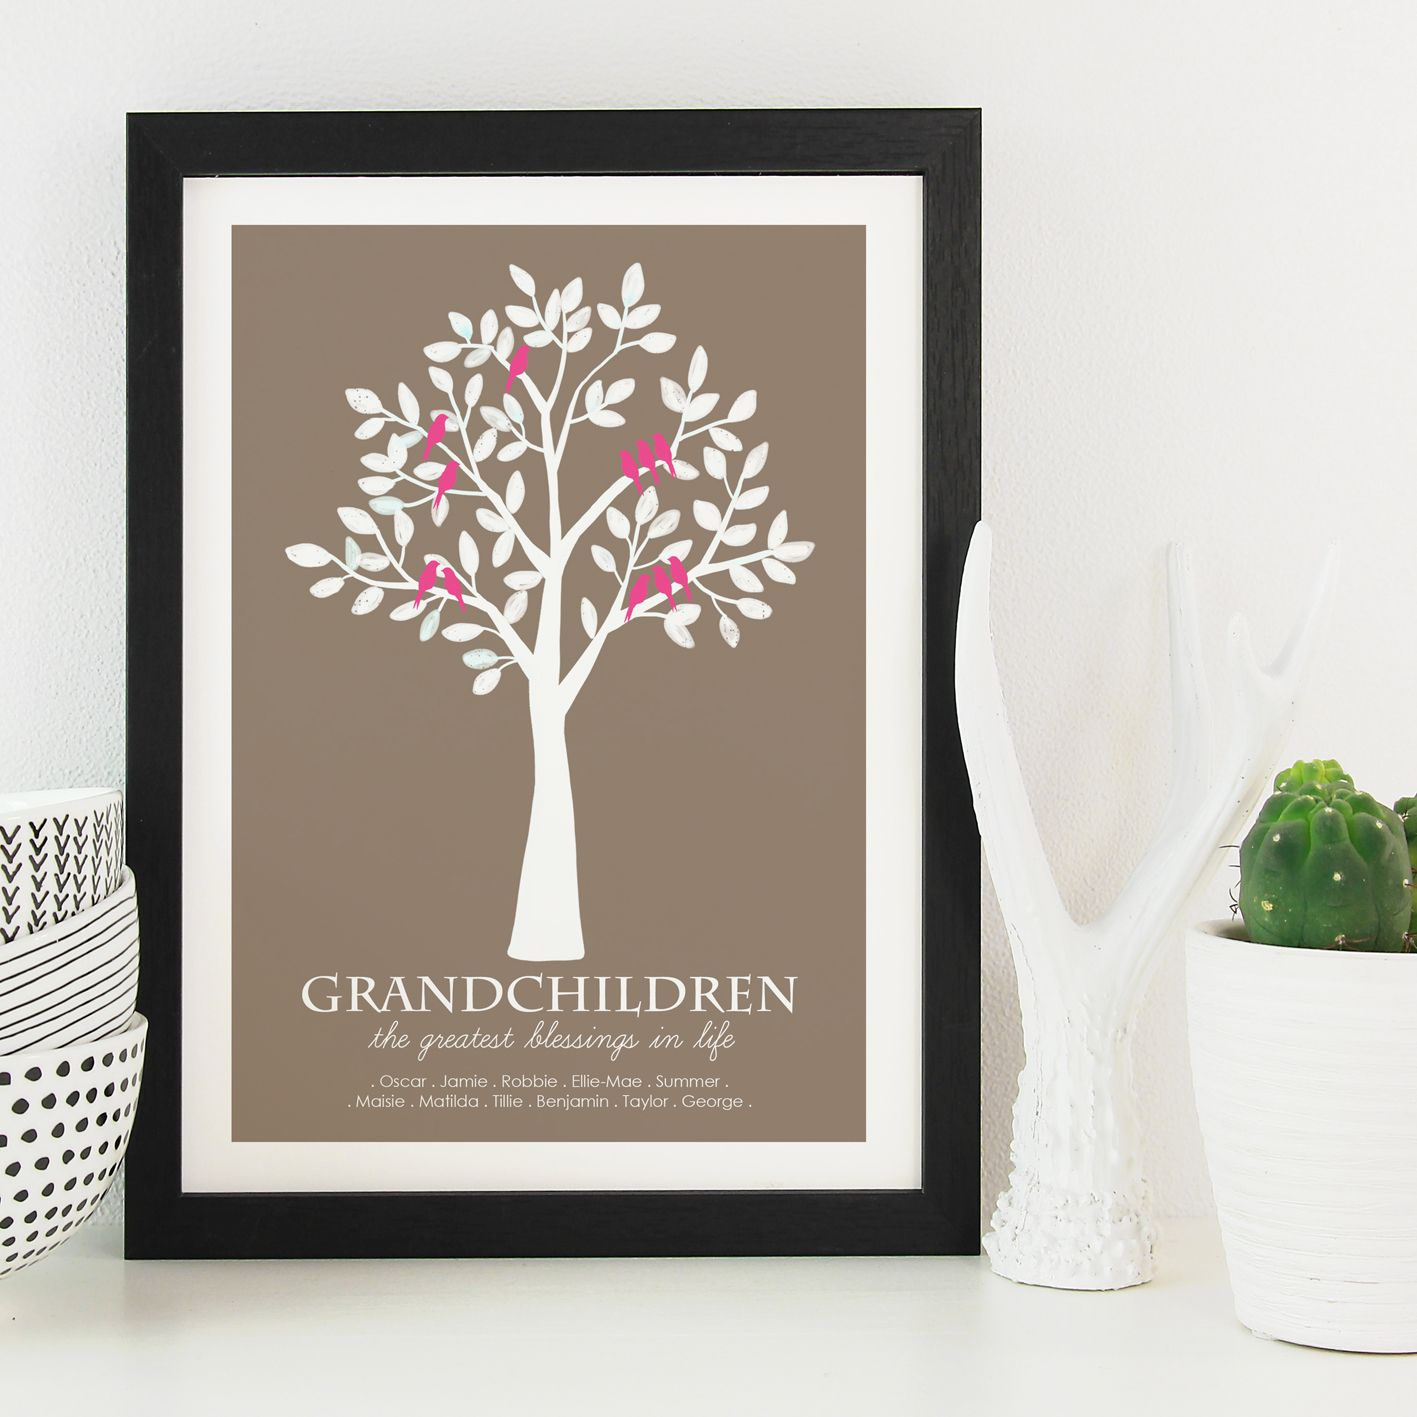 Grandparent grandchildren gift for family personalised